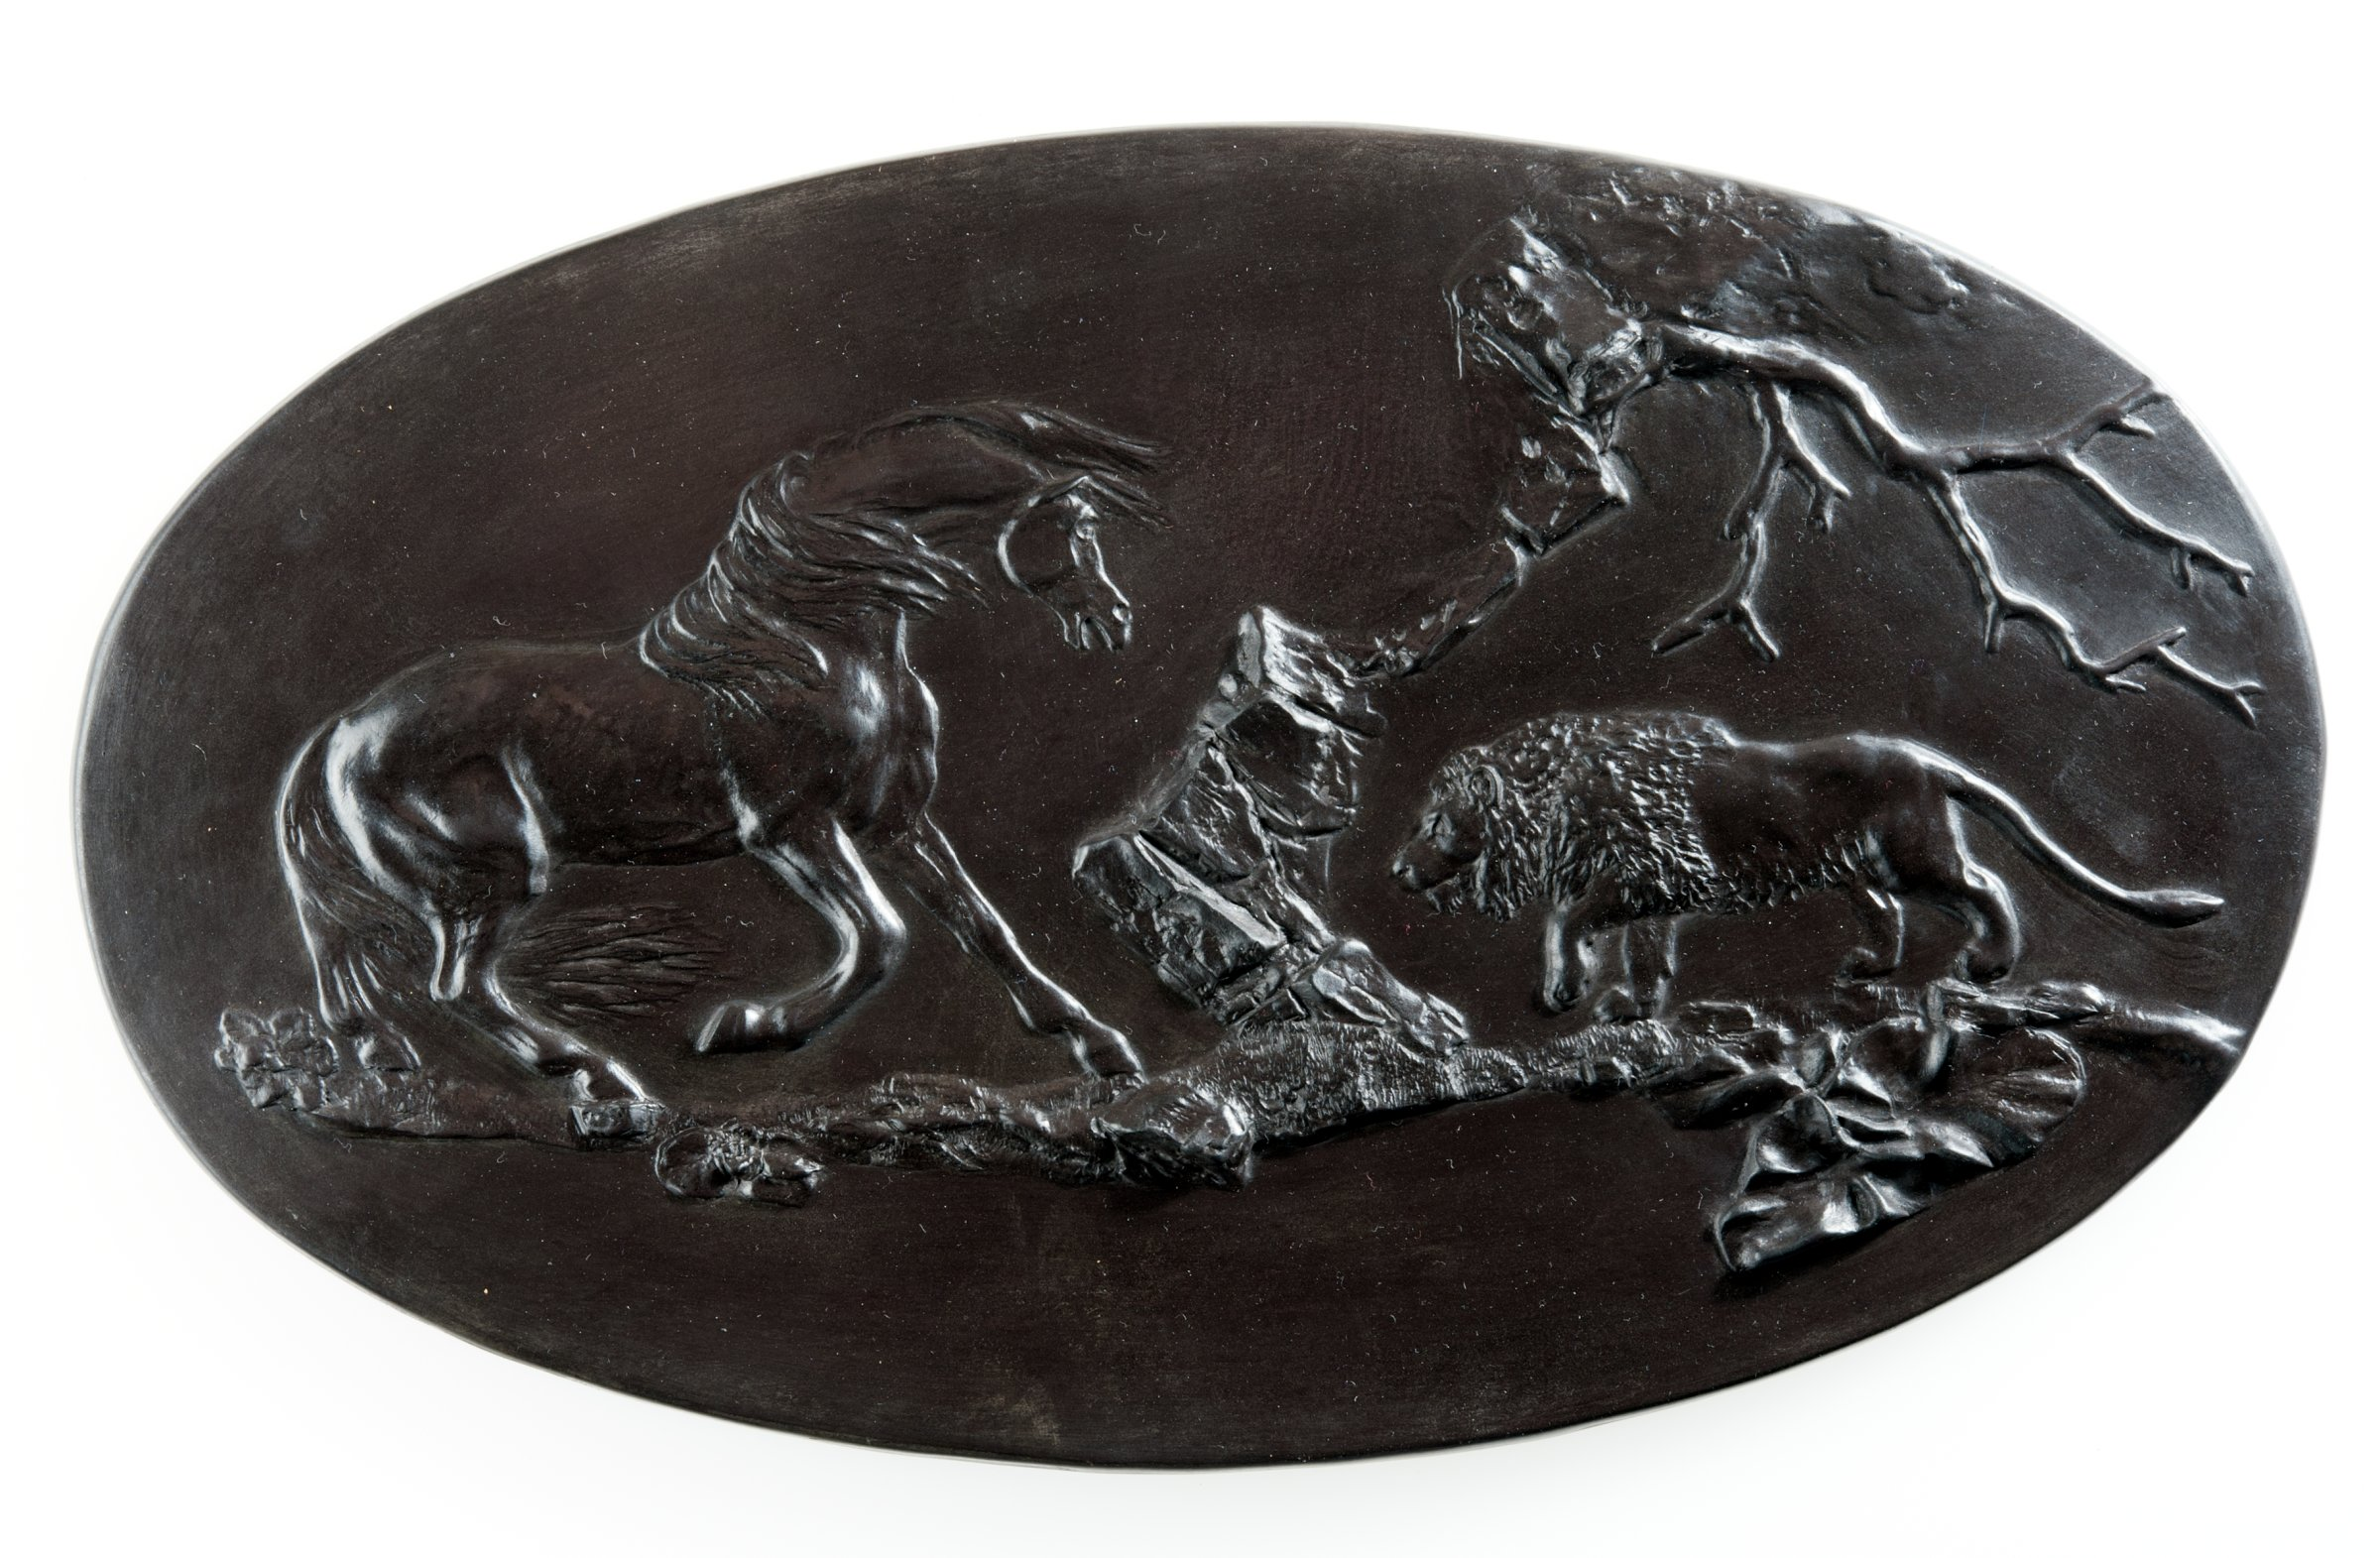 Large oval plaque of black basalt with with a scene of a horse frightened by a lion approaching from the right in a landscape.